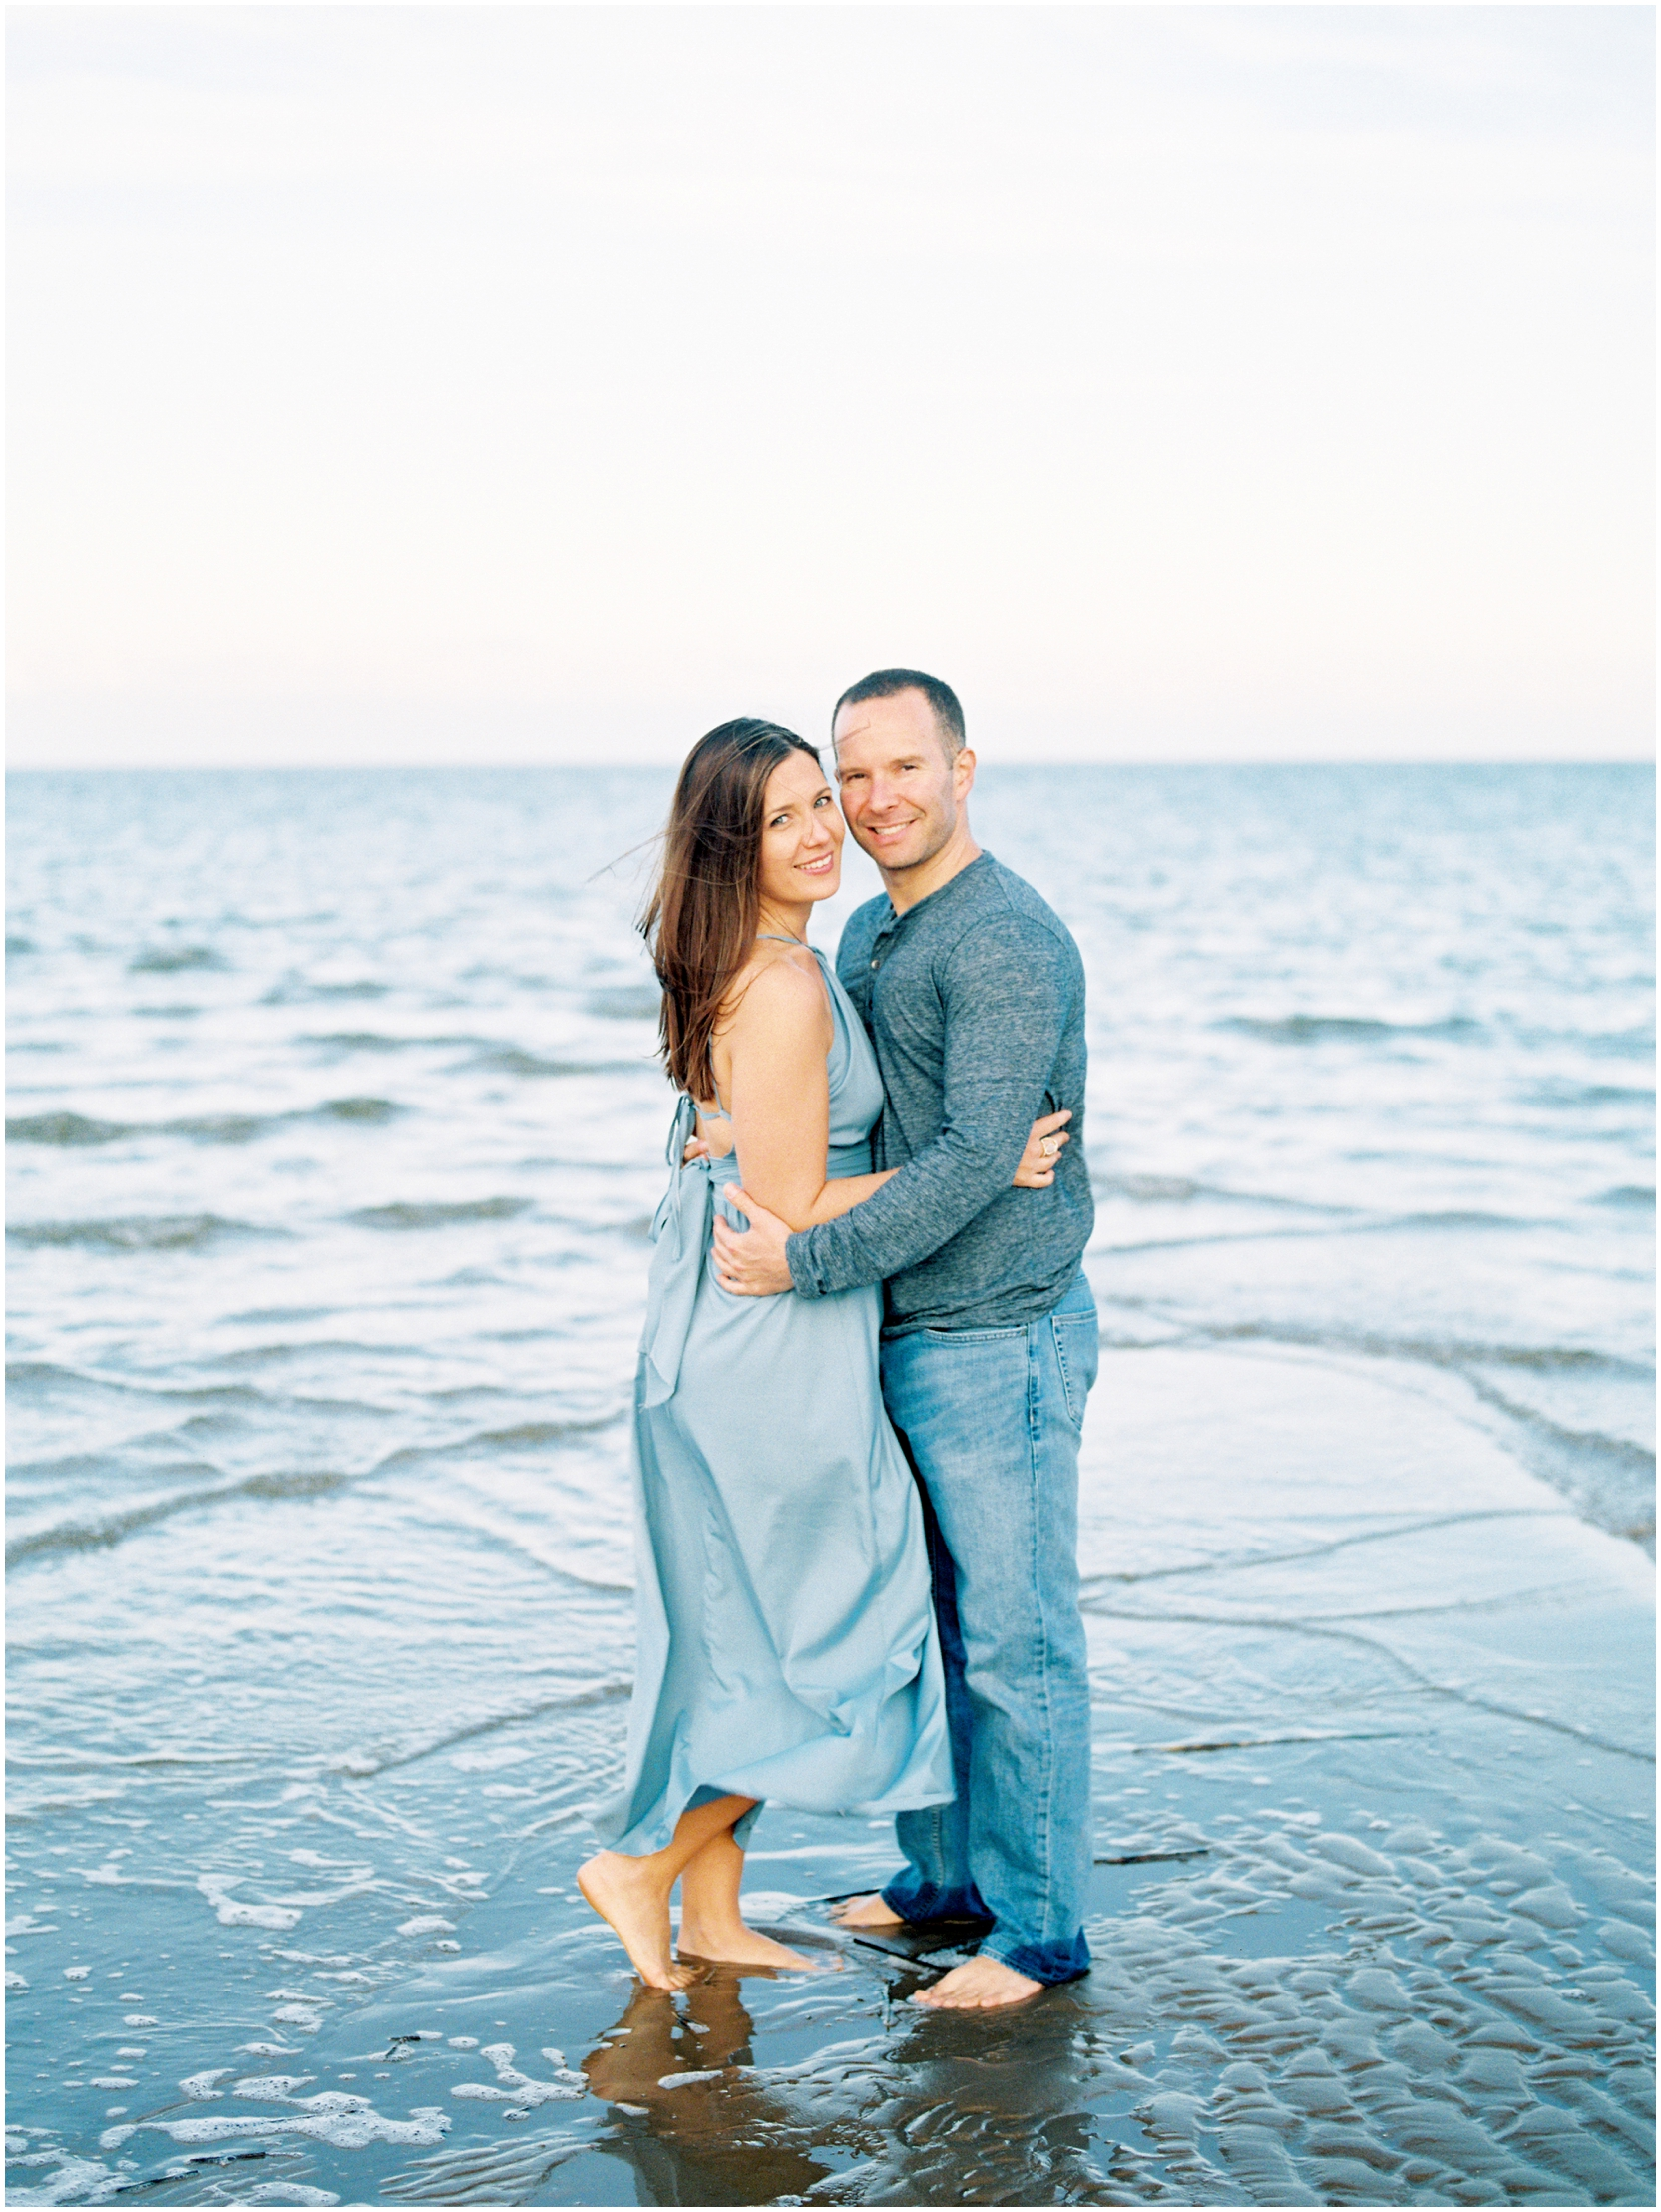 Lisa Silva Photography -Engagement Session at Big Talbot Island- Jacksonville and North East Florida Fine Art Film Photographer_0055.jpg